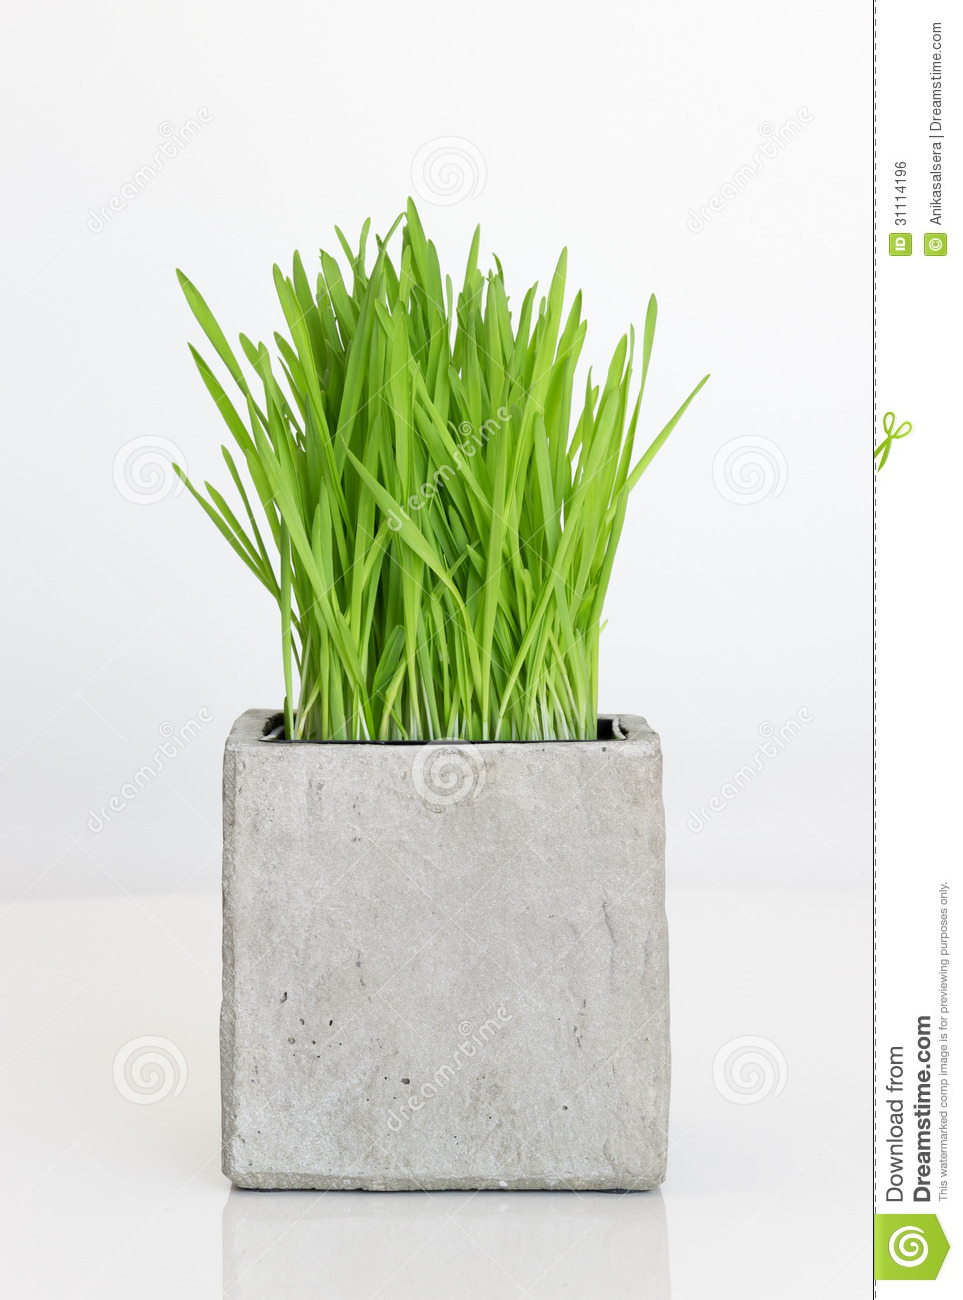 Wheatgrass Growing In Concrete Pot Royalty Free Stock Image.